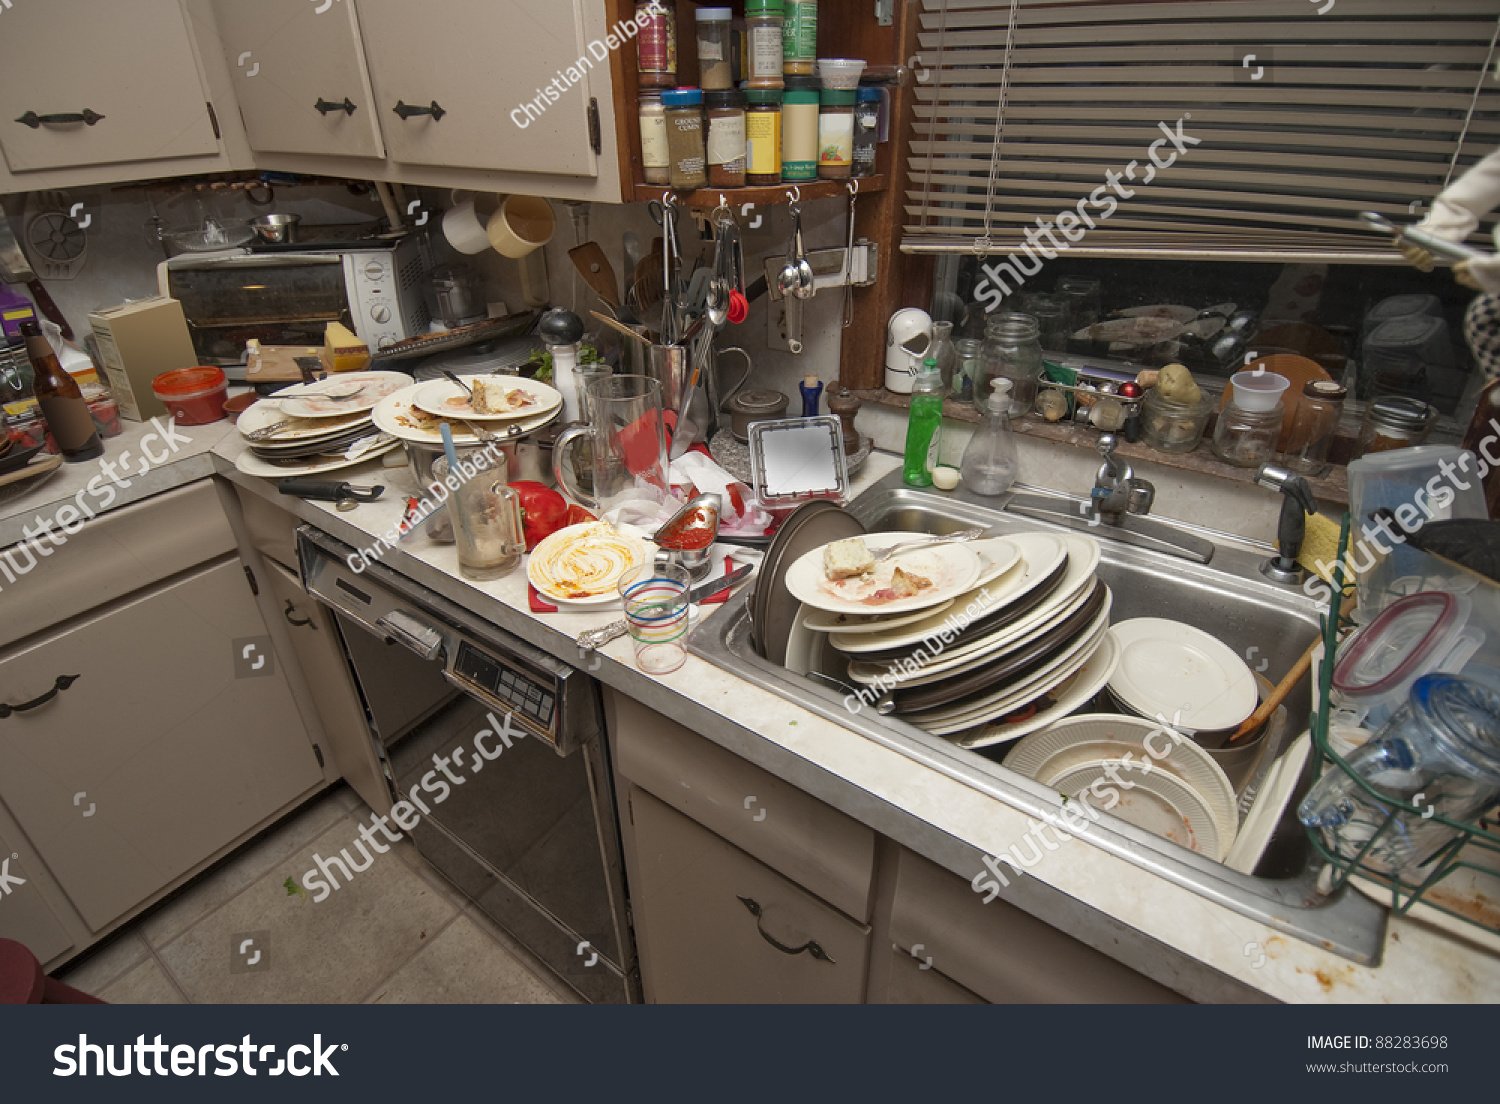 Pile Dirty Dishes Sink Counter Top Stock Photo 88283698